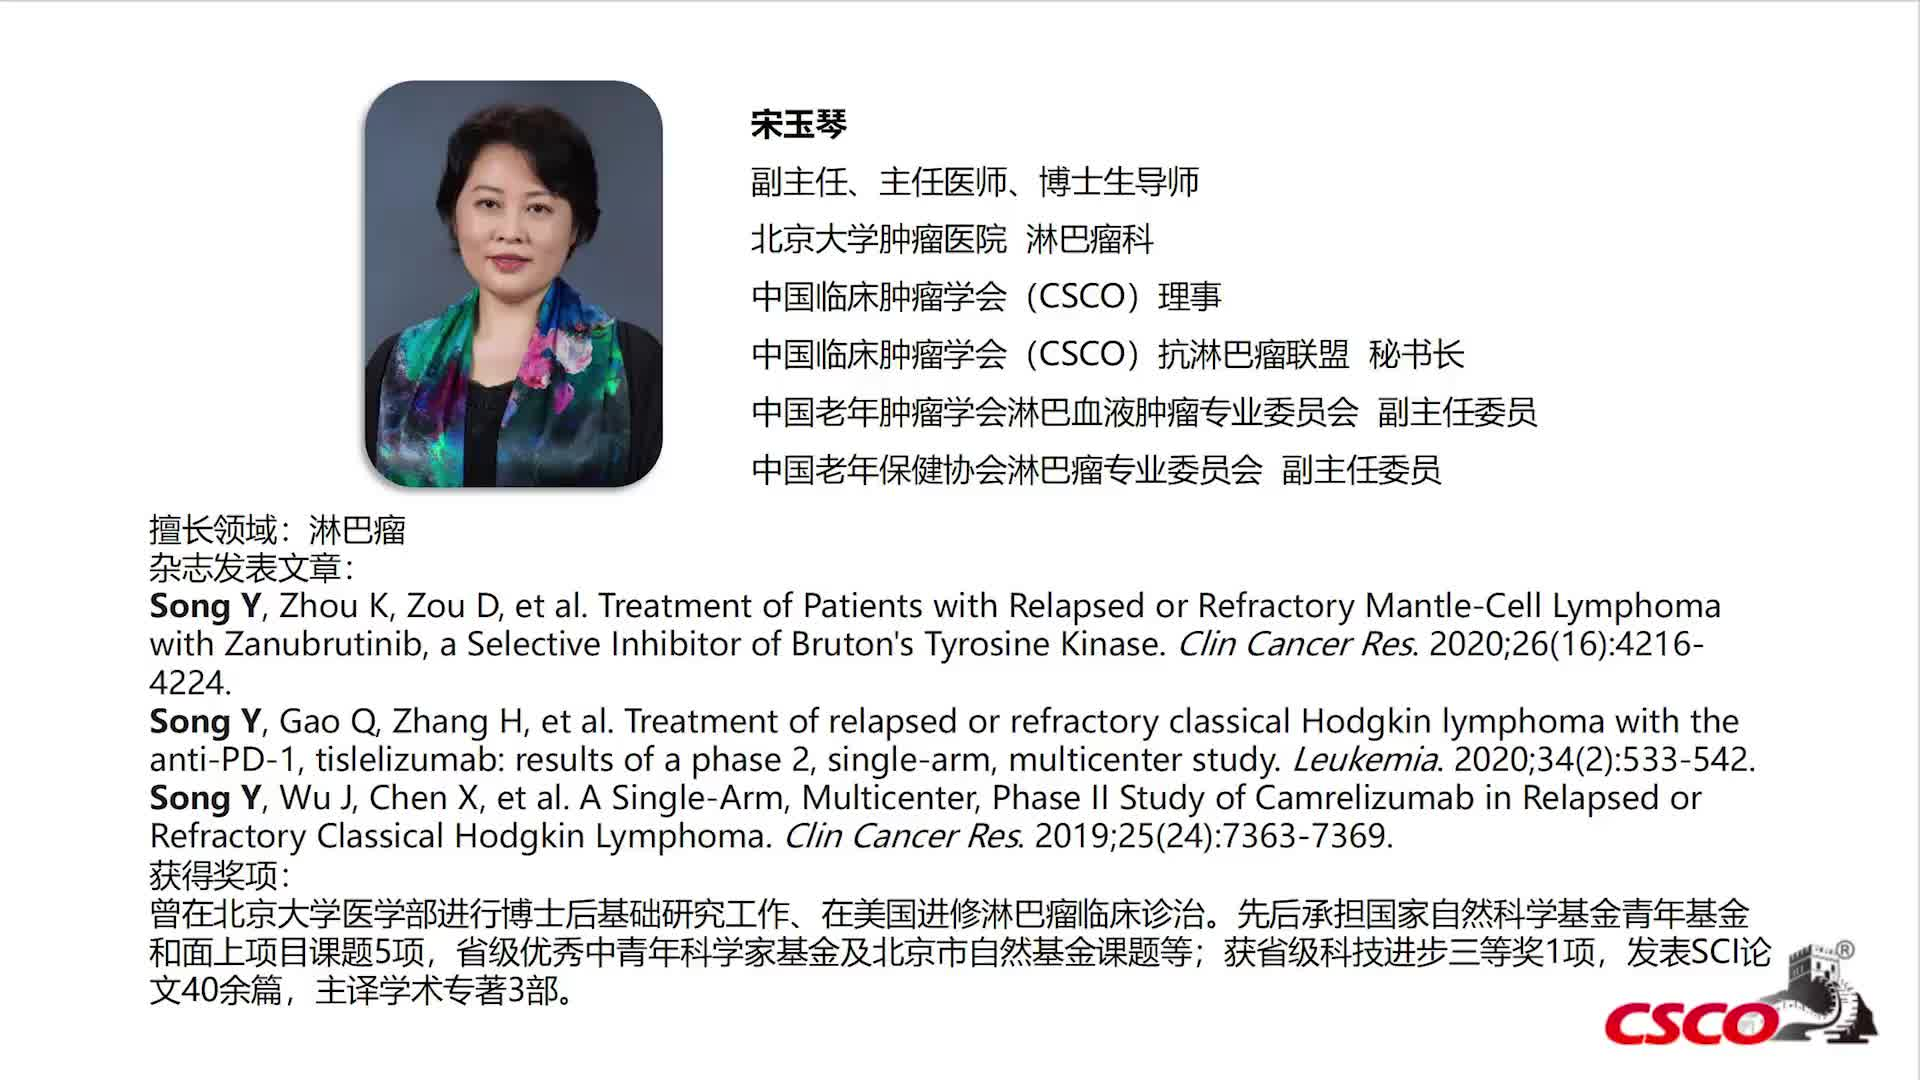 Ibrutinib + Rituximab, Cyclophosphamide, Doxorubicin, Vincristine, and Prednisone in Patients With Untreated  Non-Germinal Center B-Cell–Like Diffuse Large B-Cell Lymphoma: a Chinese Subgroup Analysis of the Phase 3 PHOENIX Trial